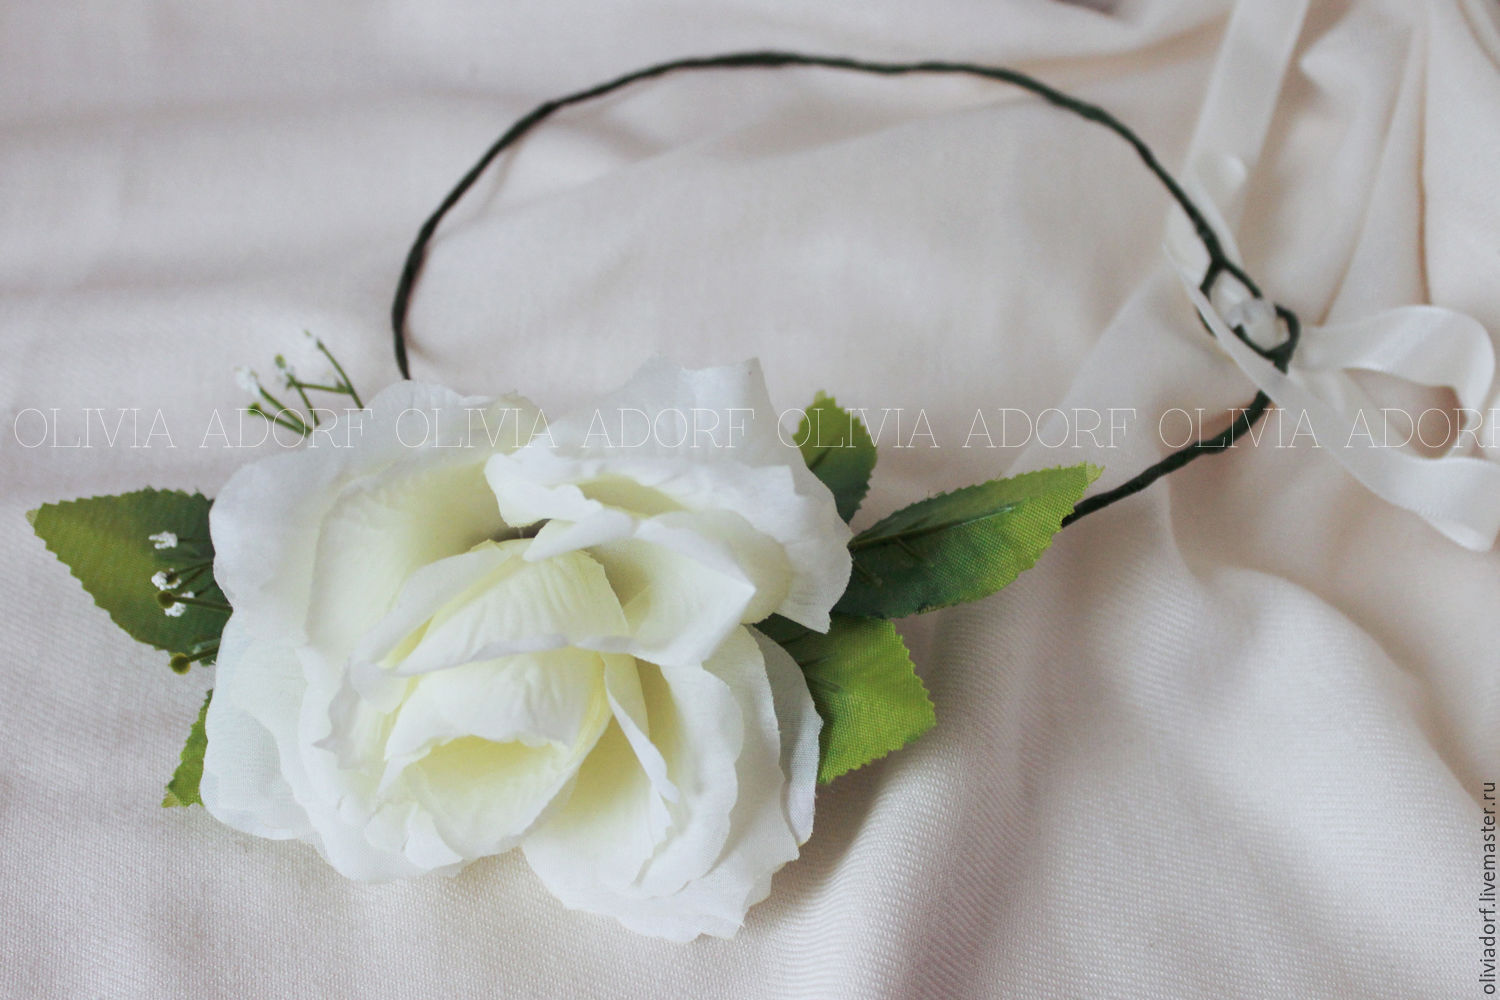 Wedding floral crown with white rose bridal headpiece flower crown wedding floral crown with white rose bridal headpiece flower crown bride hair accessory izmirmasajfo